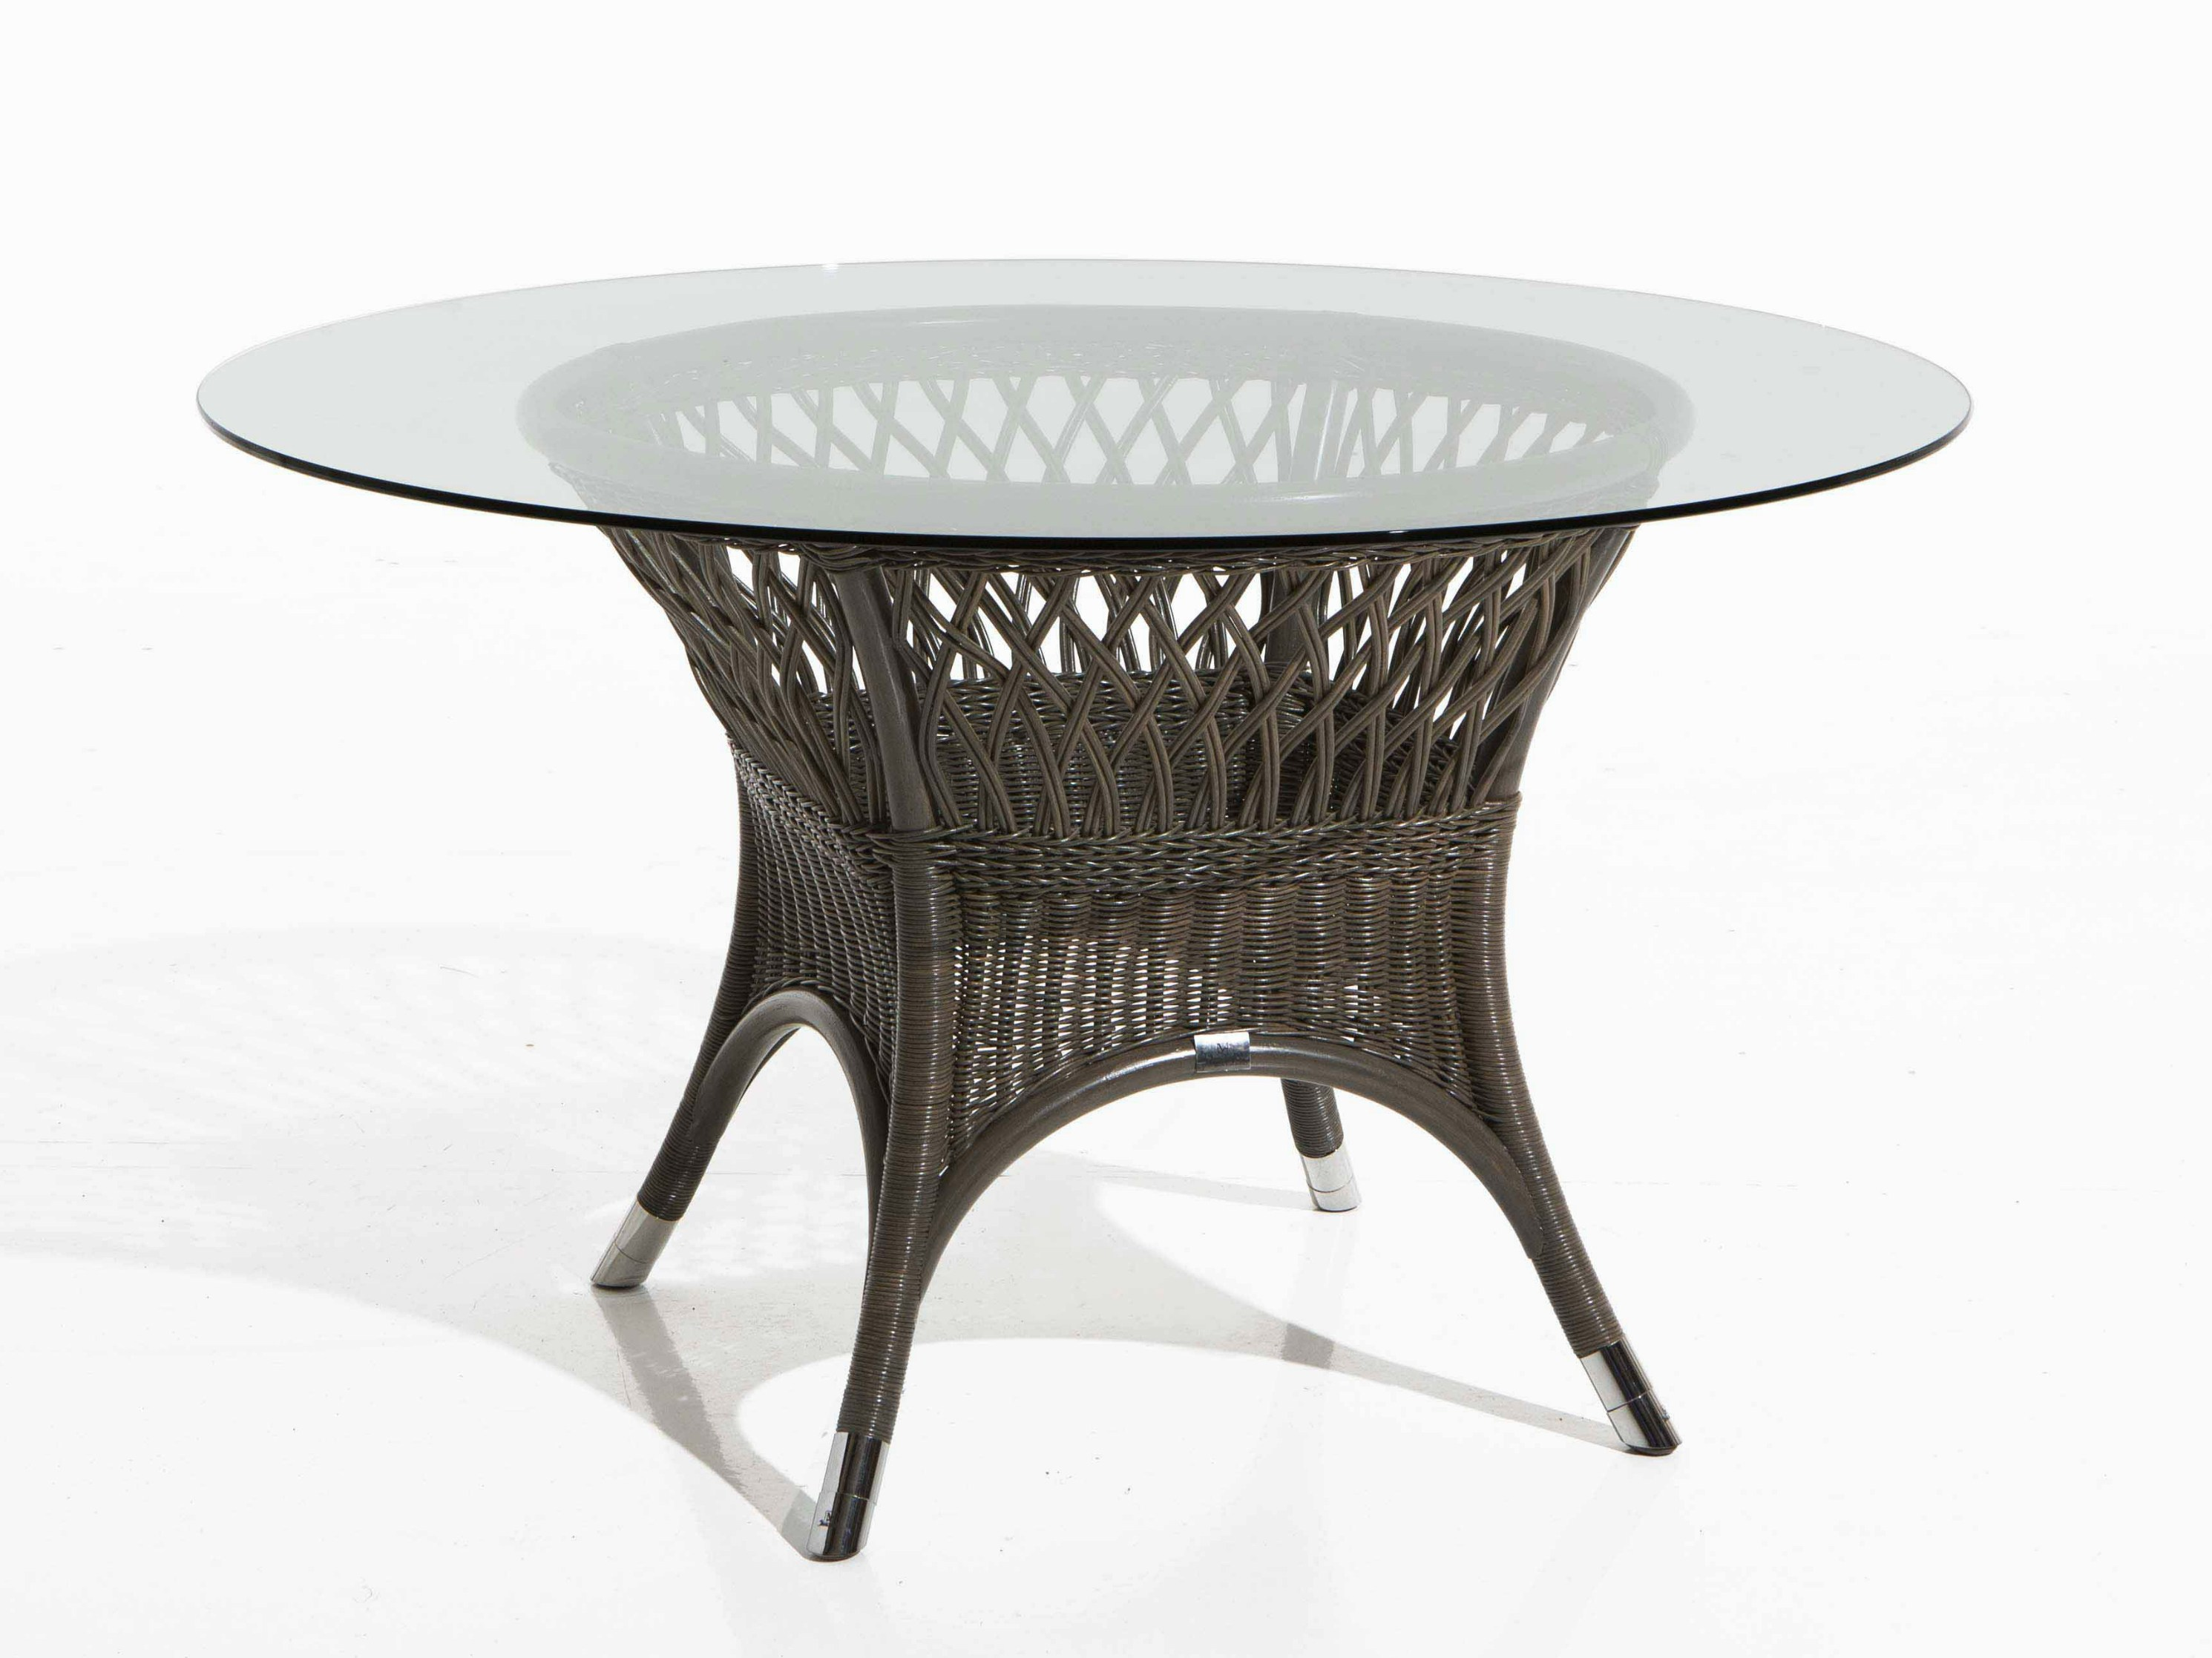 Vega Table De Jardin By Samuele Mazza Outdoor Collection By Dfn Design Samuele Mazza